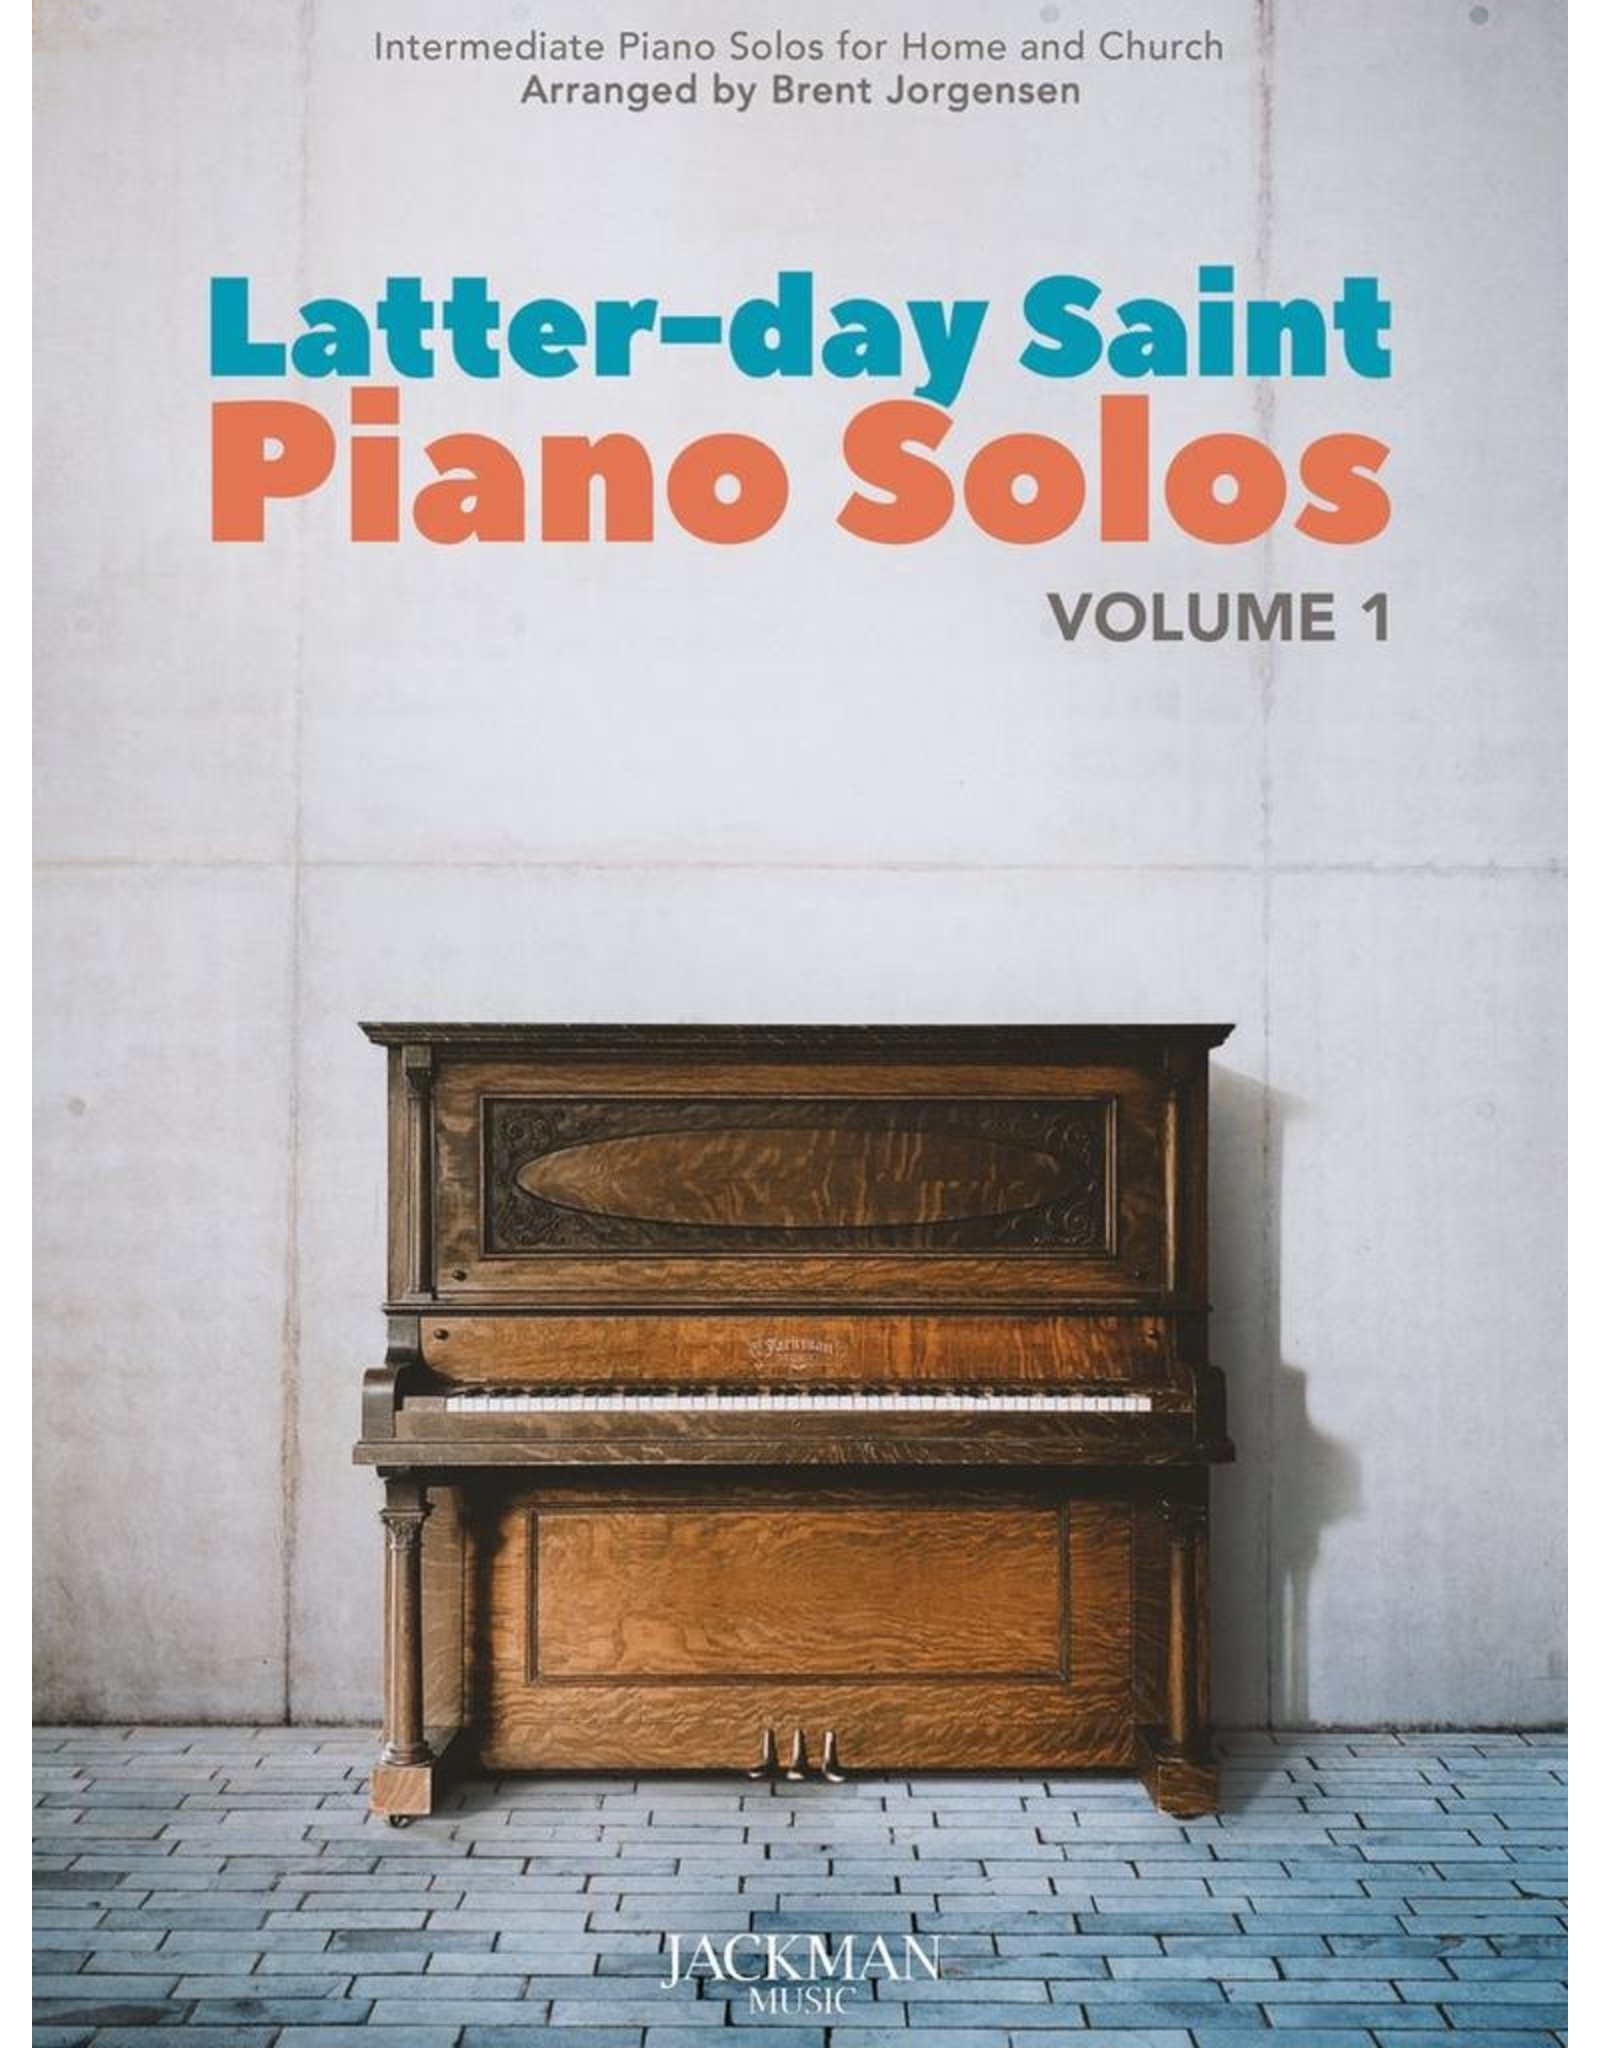 Jackman Music Latter-day Saint Piano Solos Vol. 1 arr. Brent Jorgensen